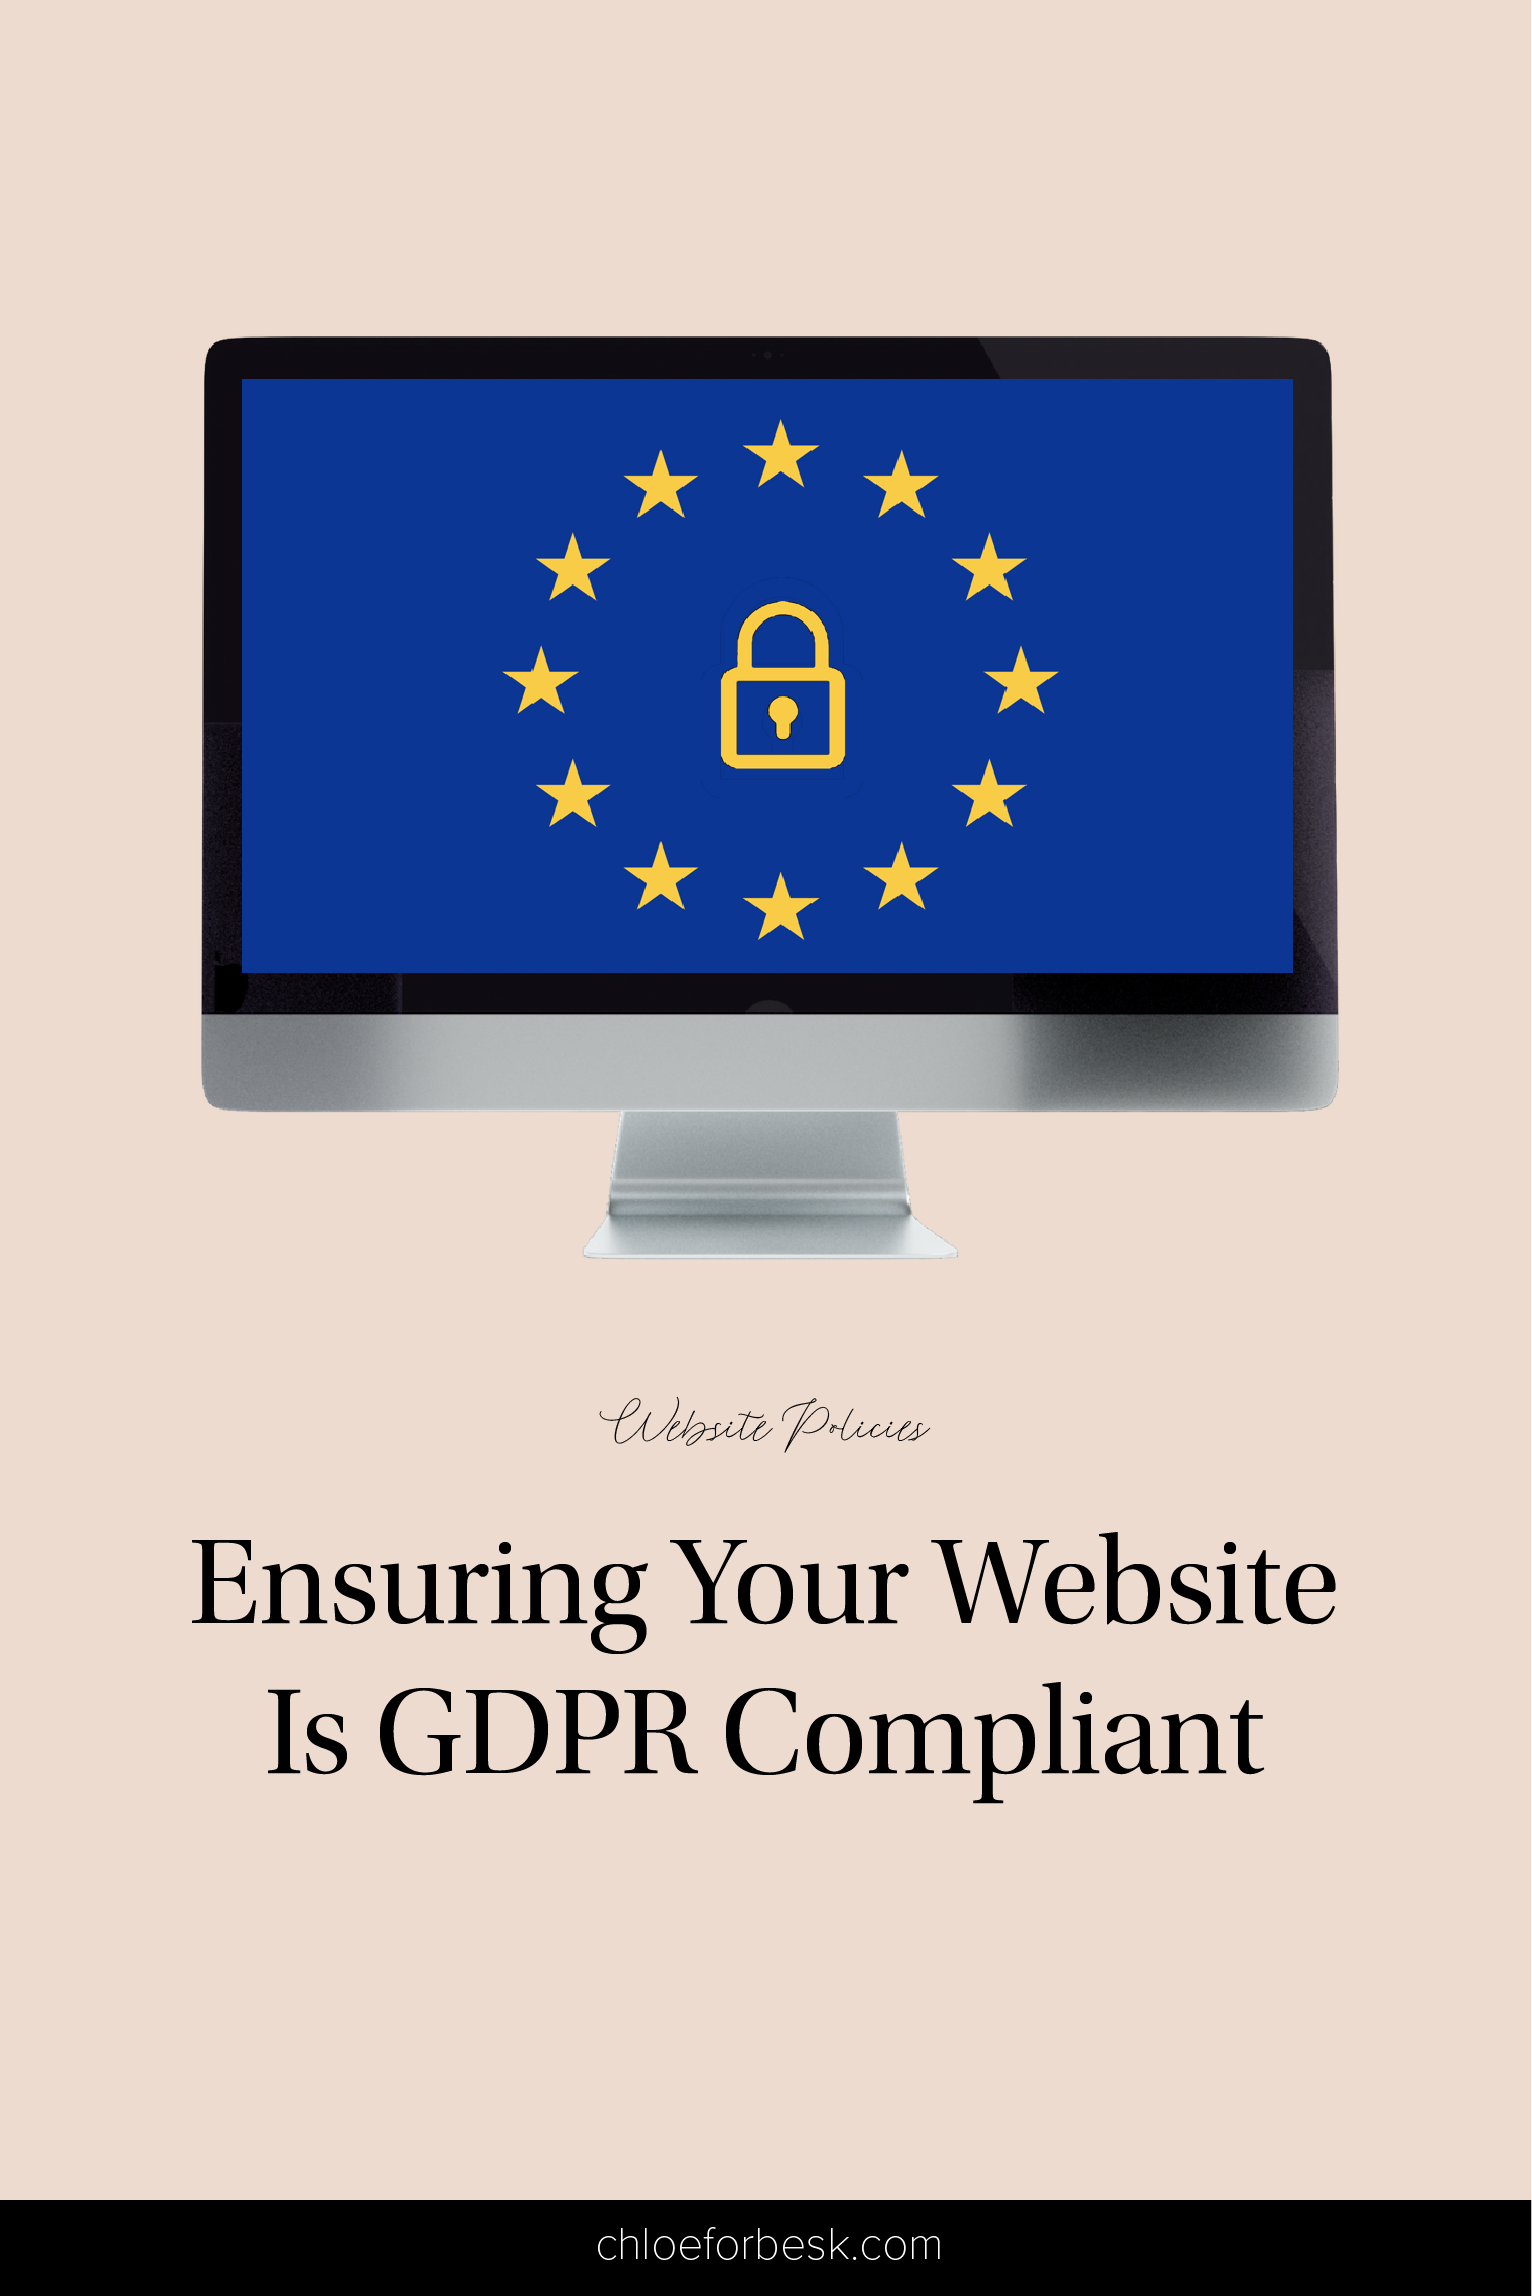 Chloe Forbes-Kindlen | nsuring your website is GDPRCompliant.png